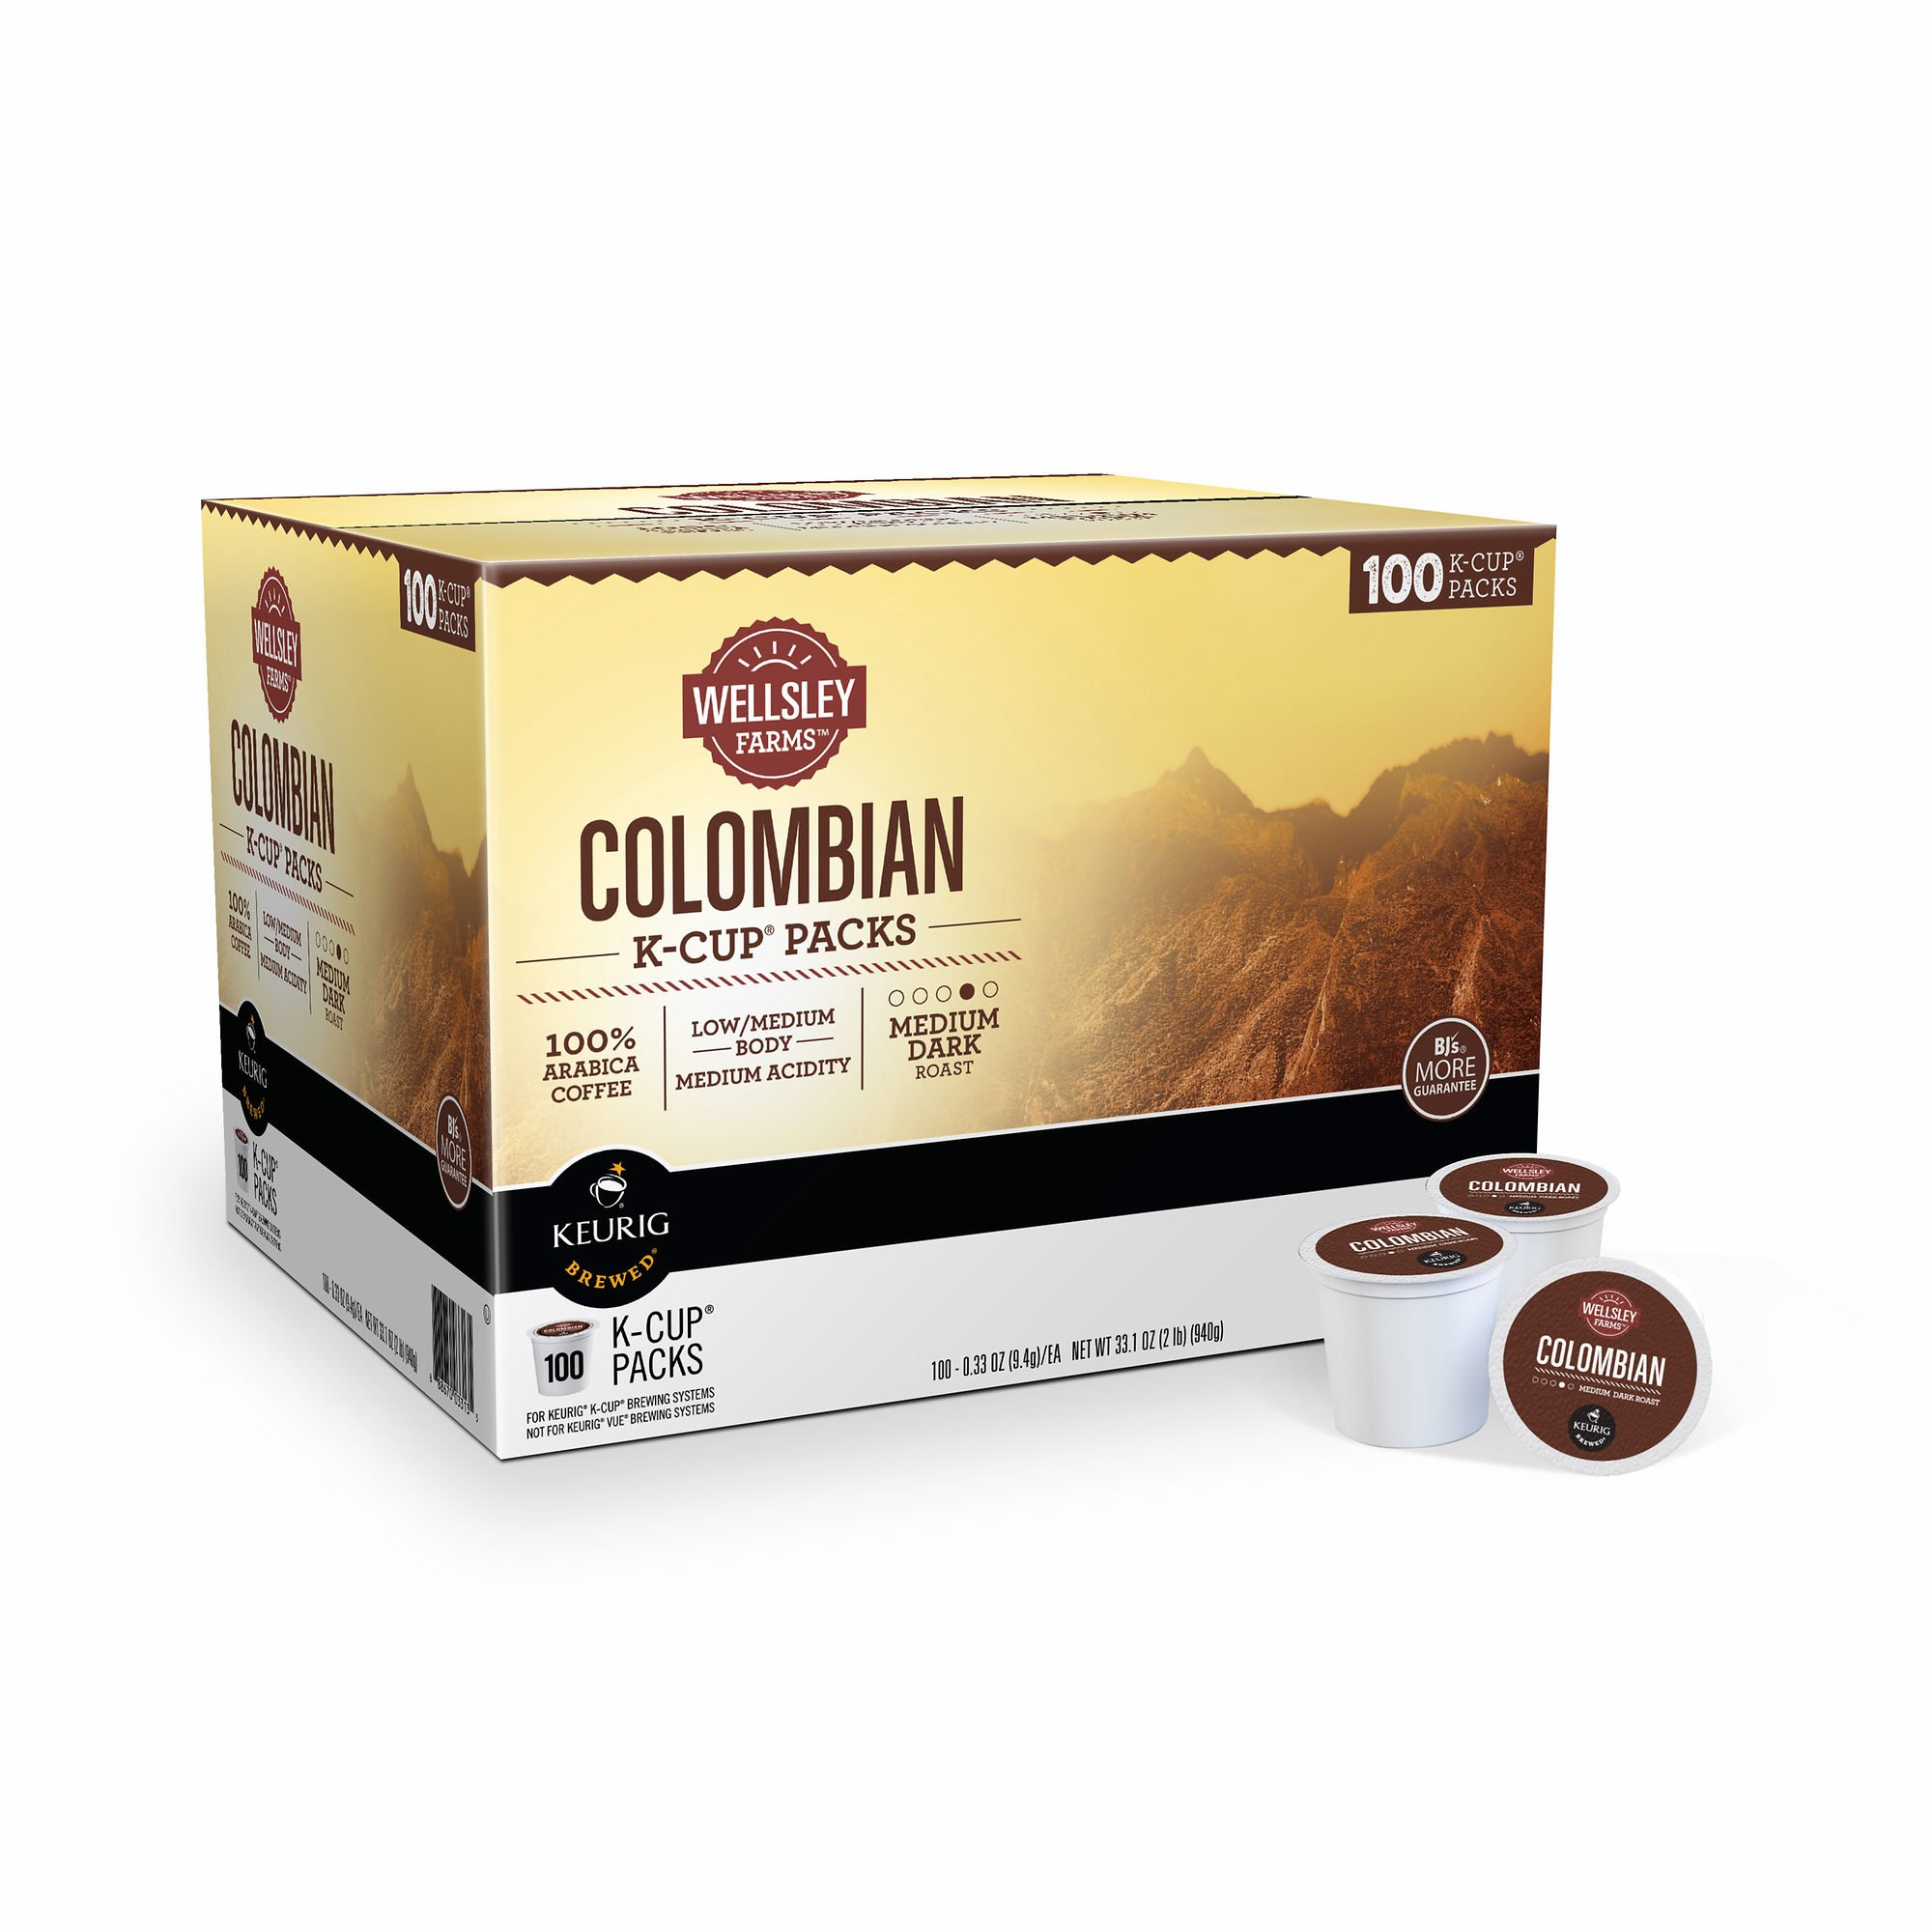 Wellsley Farms Colombian K-Cup Pods, 100 ct. (pack of 2)